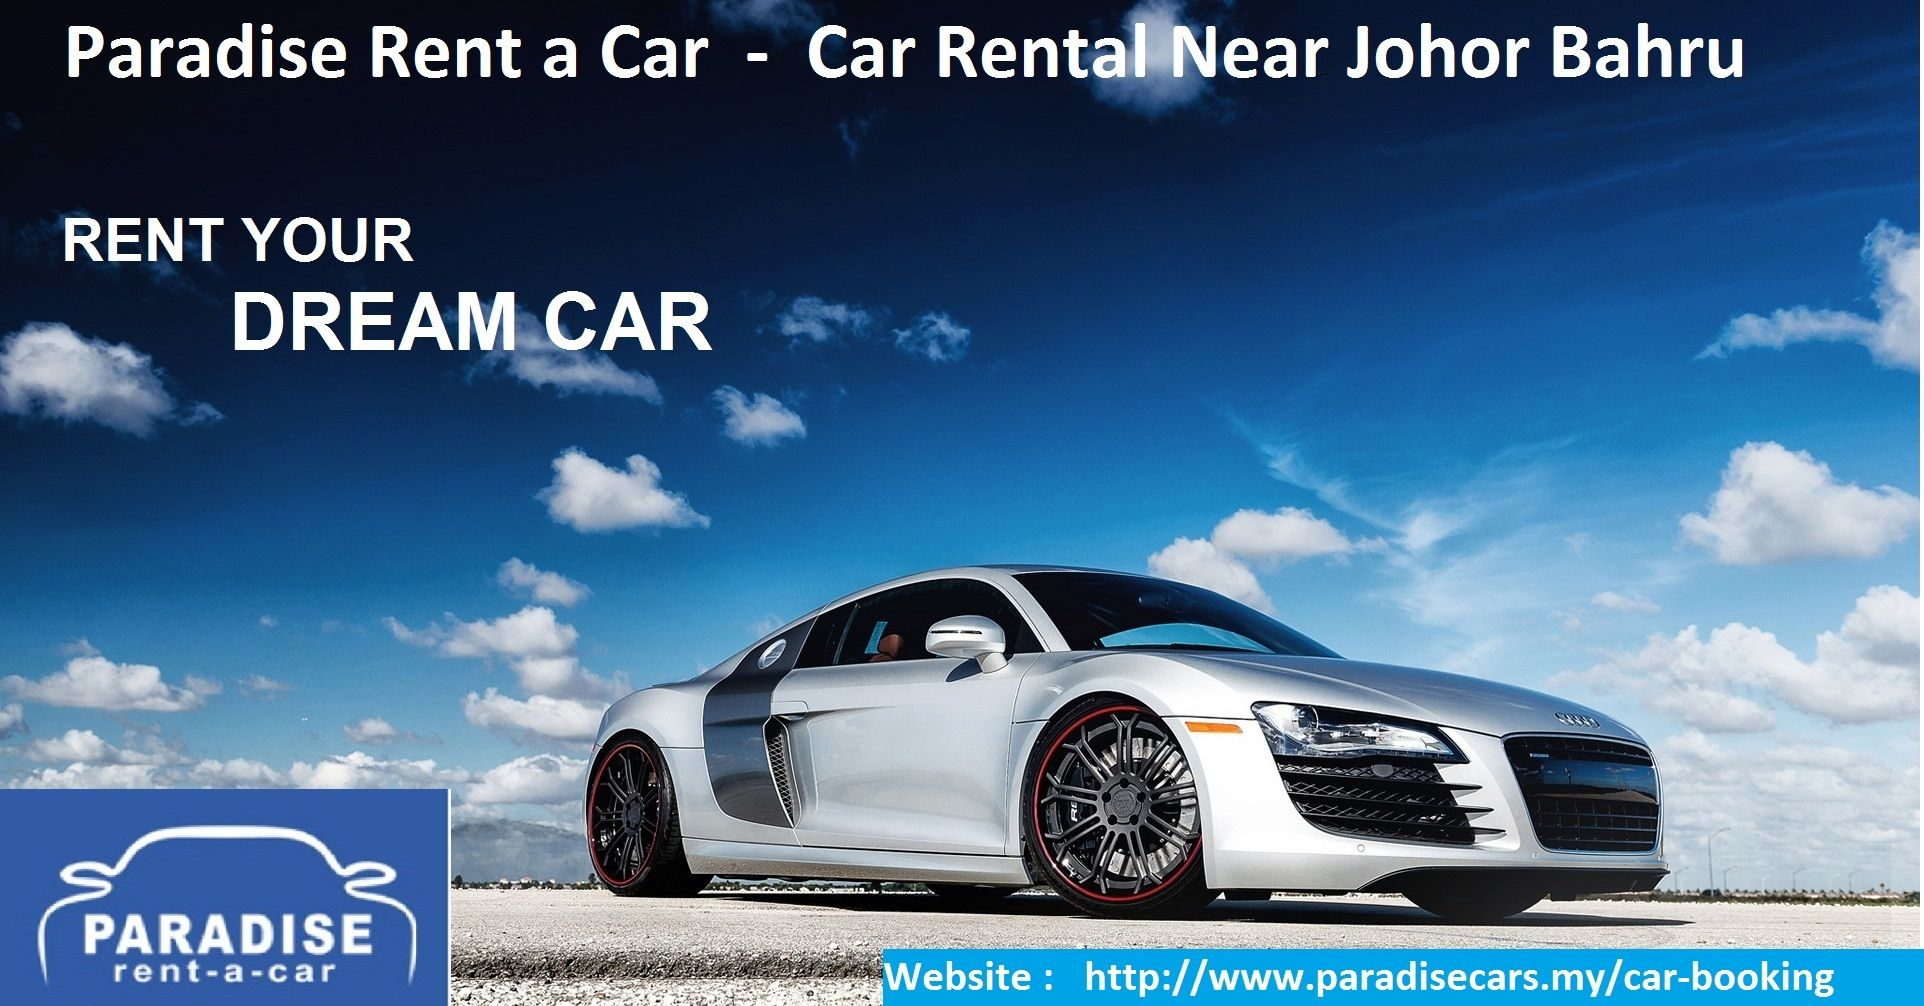 Paradise Car Rental Johor Malaysia If You Are Looking For Budget Car Rentals For Journey To Johor Ba Audi R8 Wallpaper Sports Car Wallpaper Car Wallpapers